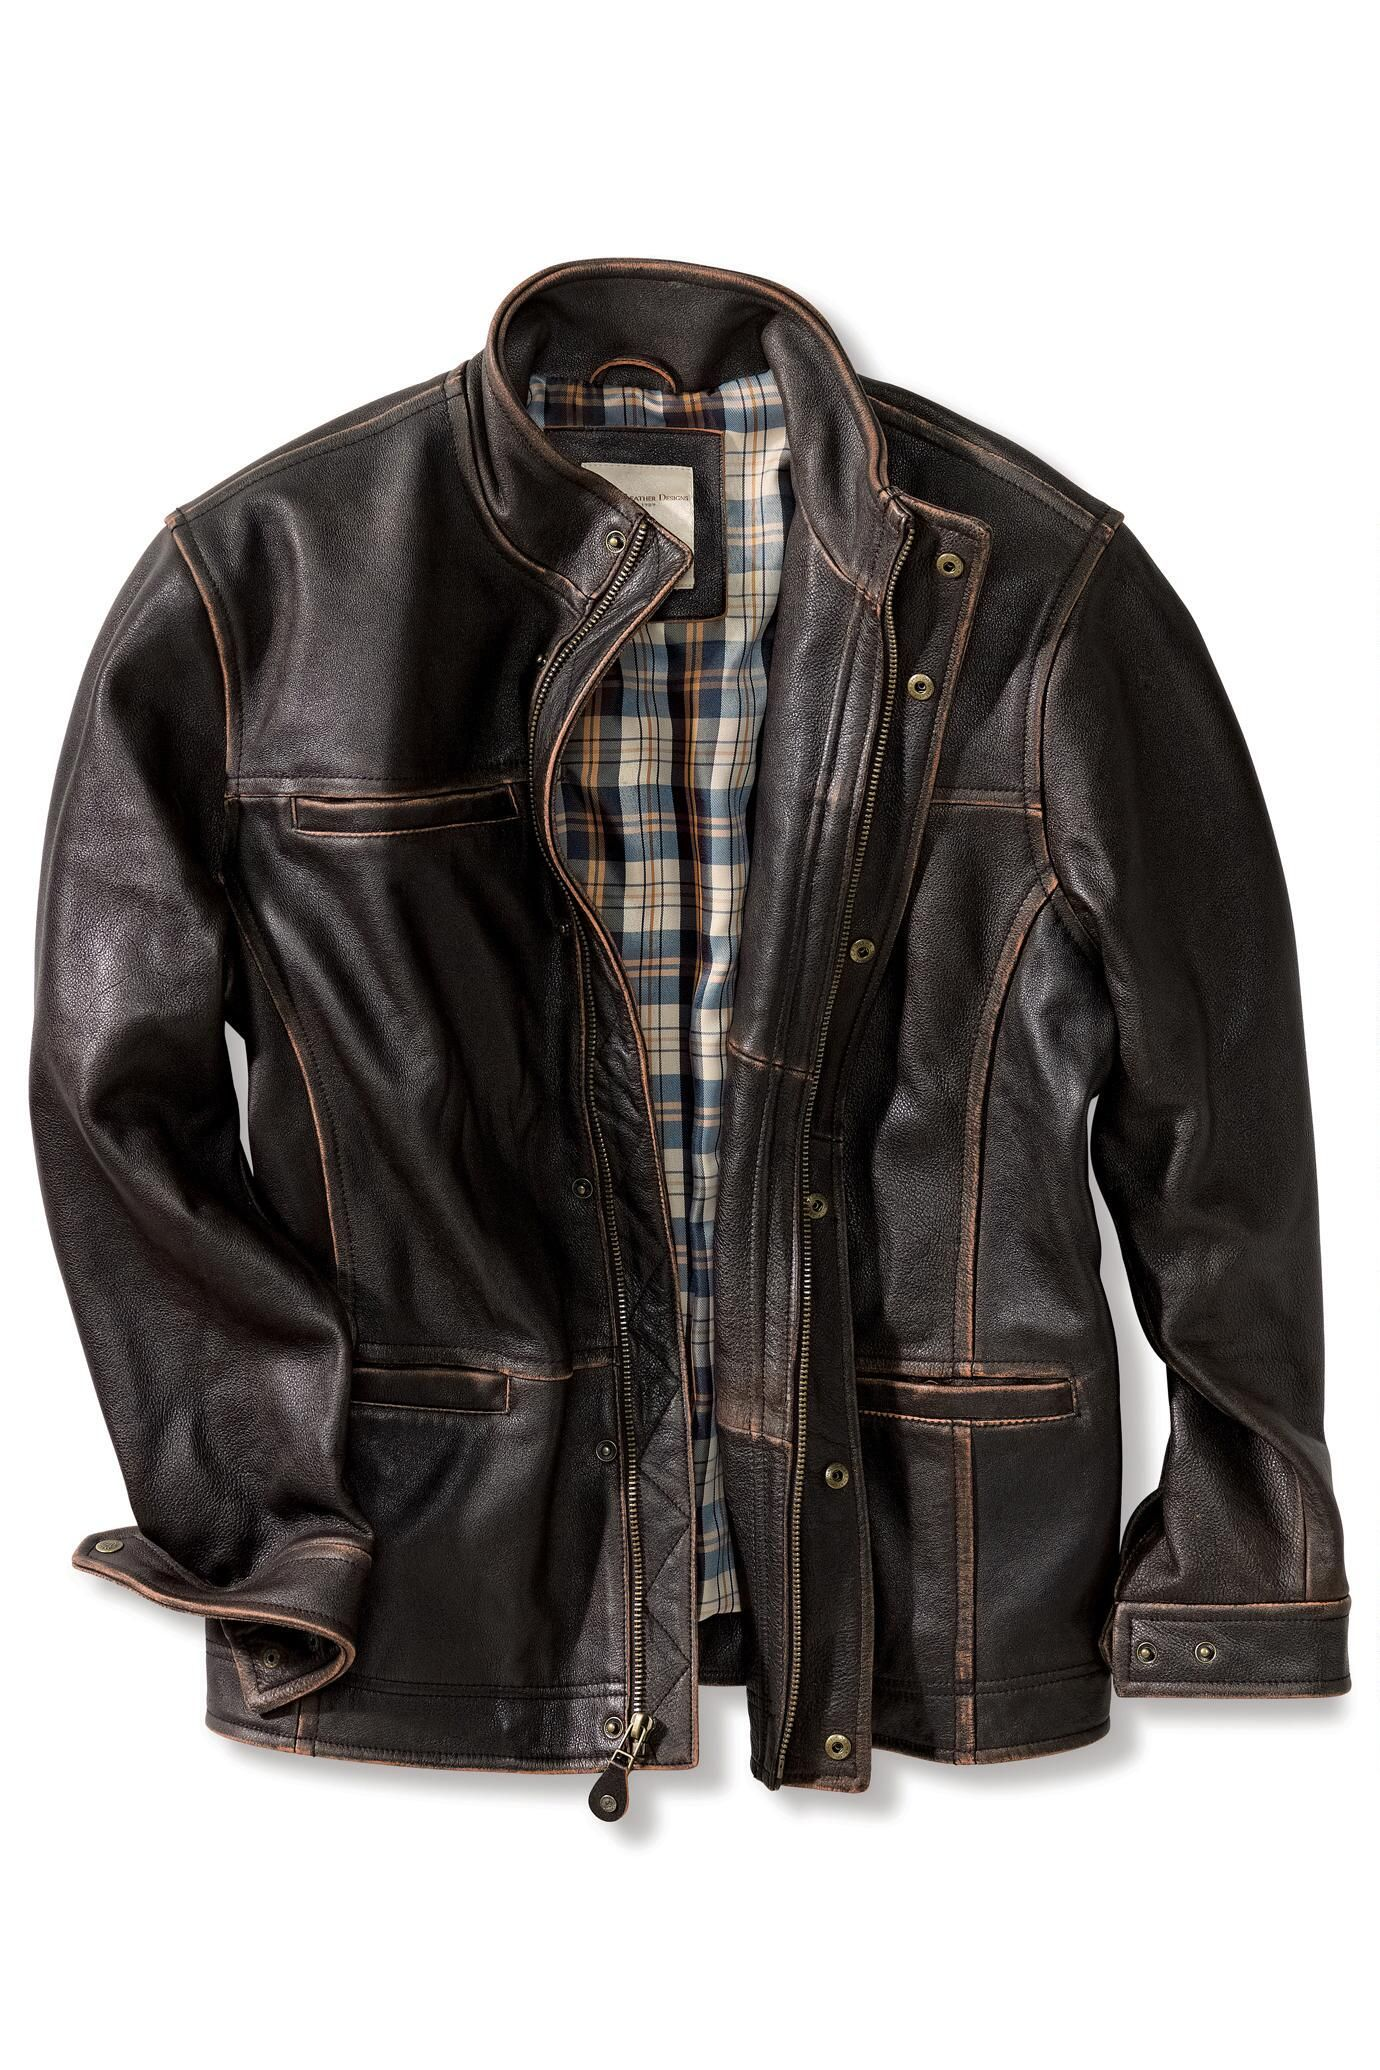 the nonnative when far designer that t fall was japanese matter of iconic fujii jacket best it imprint collection drycleanonly takayuki jackets its thus winter rug this i reminded doesn in dropped leather rugged